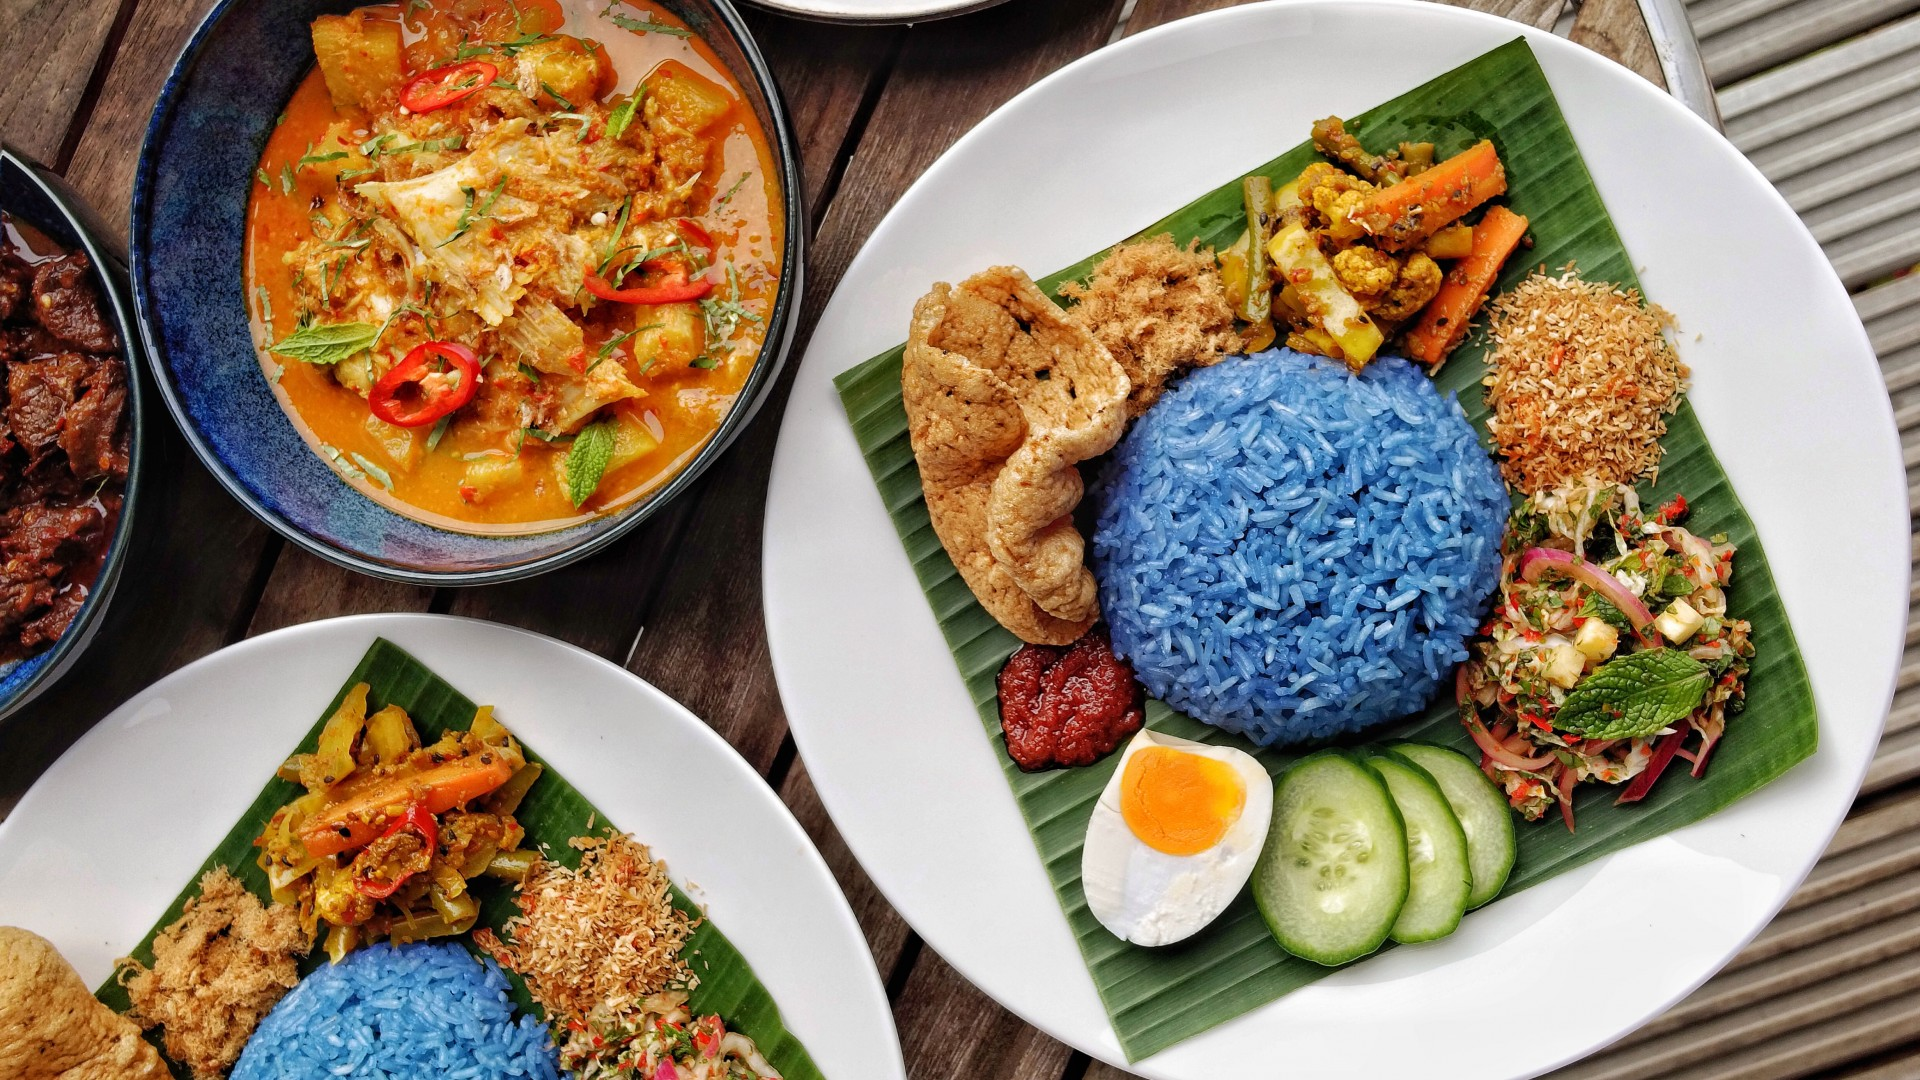 Blue pea flower and herb rice (Nasi-Kerabu) with skate curry